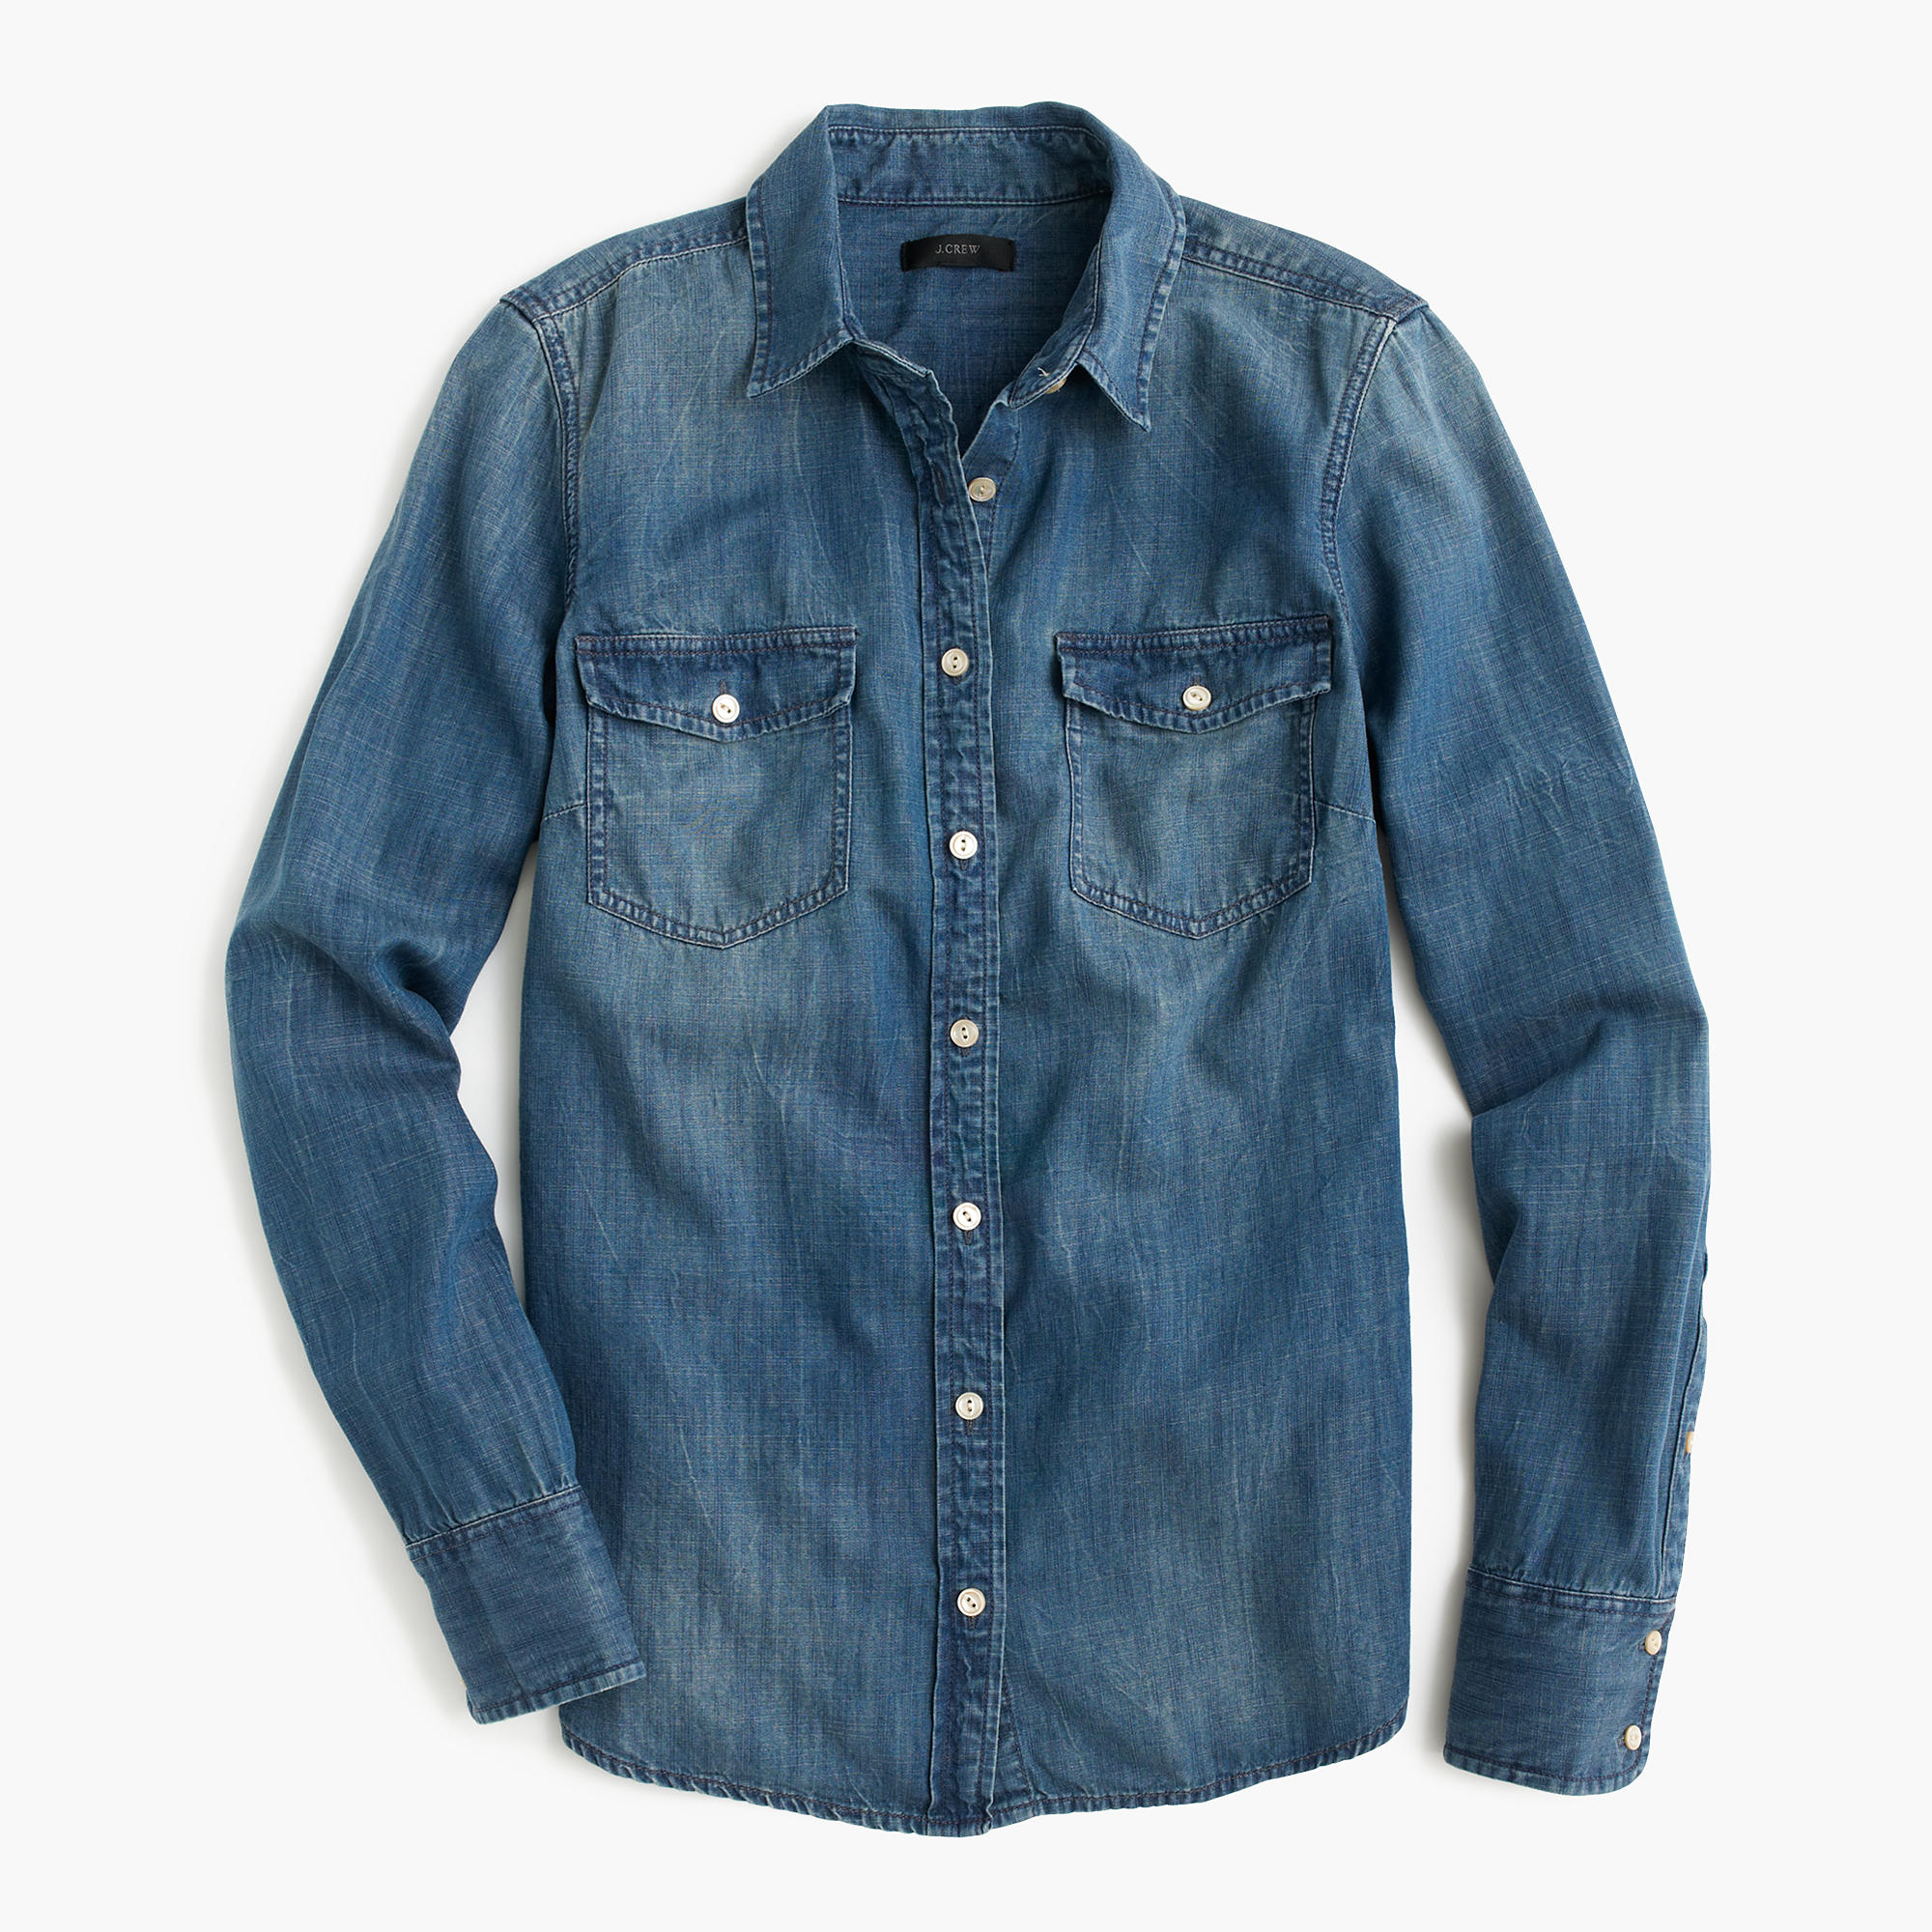 Western chambray shirt women 39 s shirts j crew for Chambray shirt women